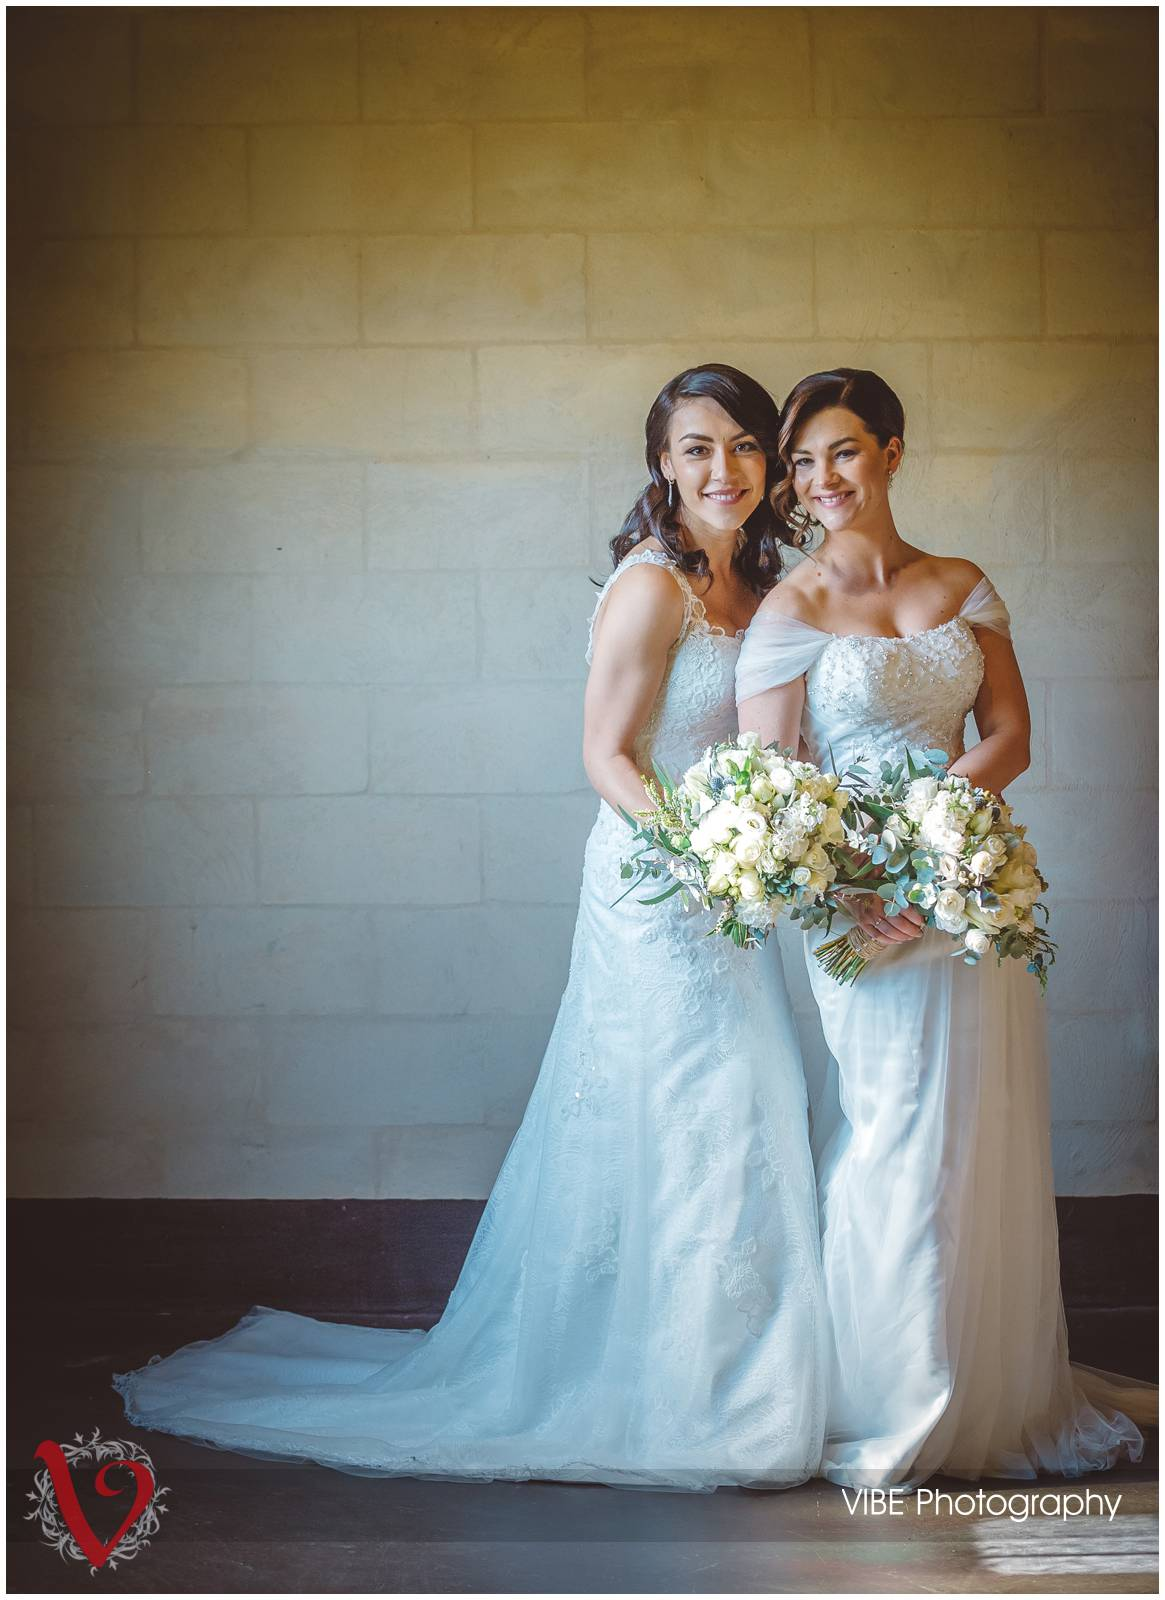 Christine & Emma | VIBE Photography